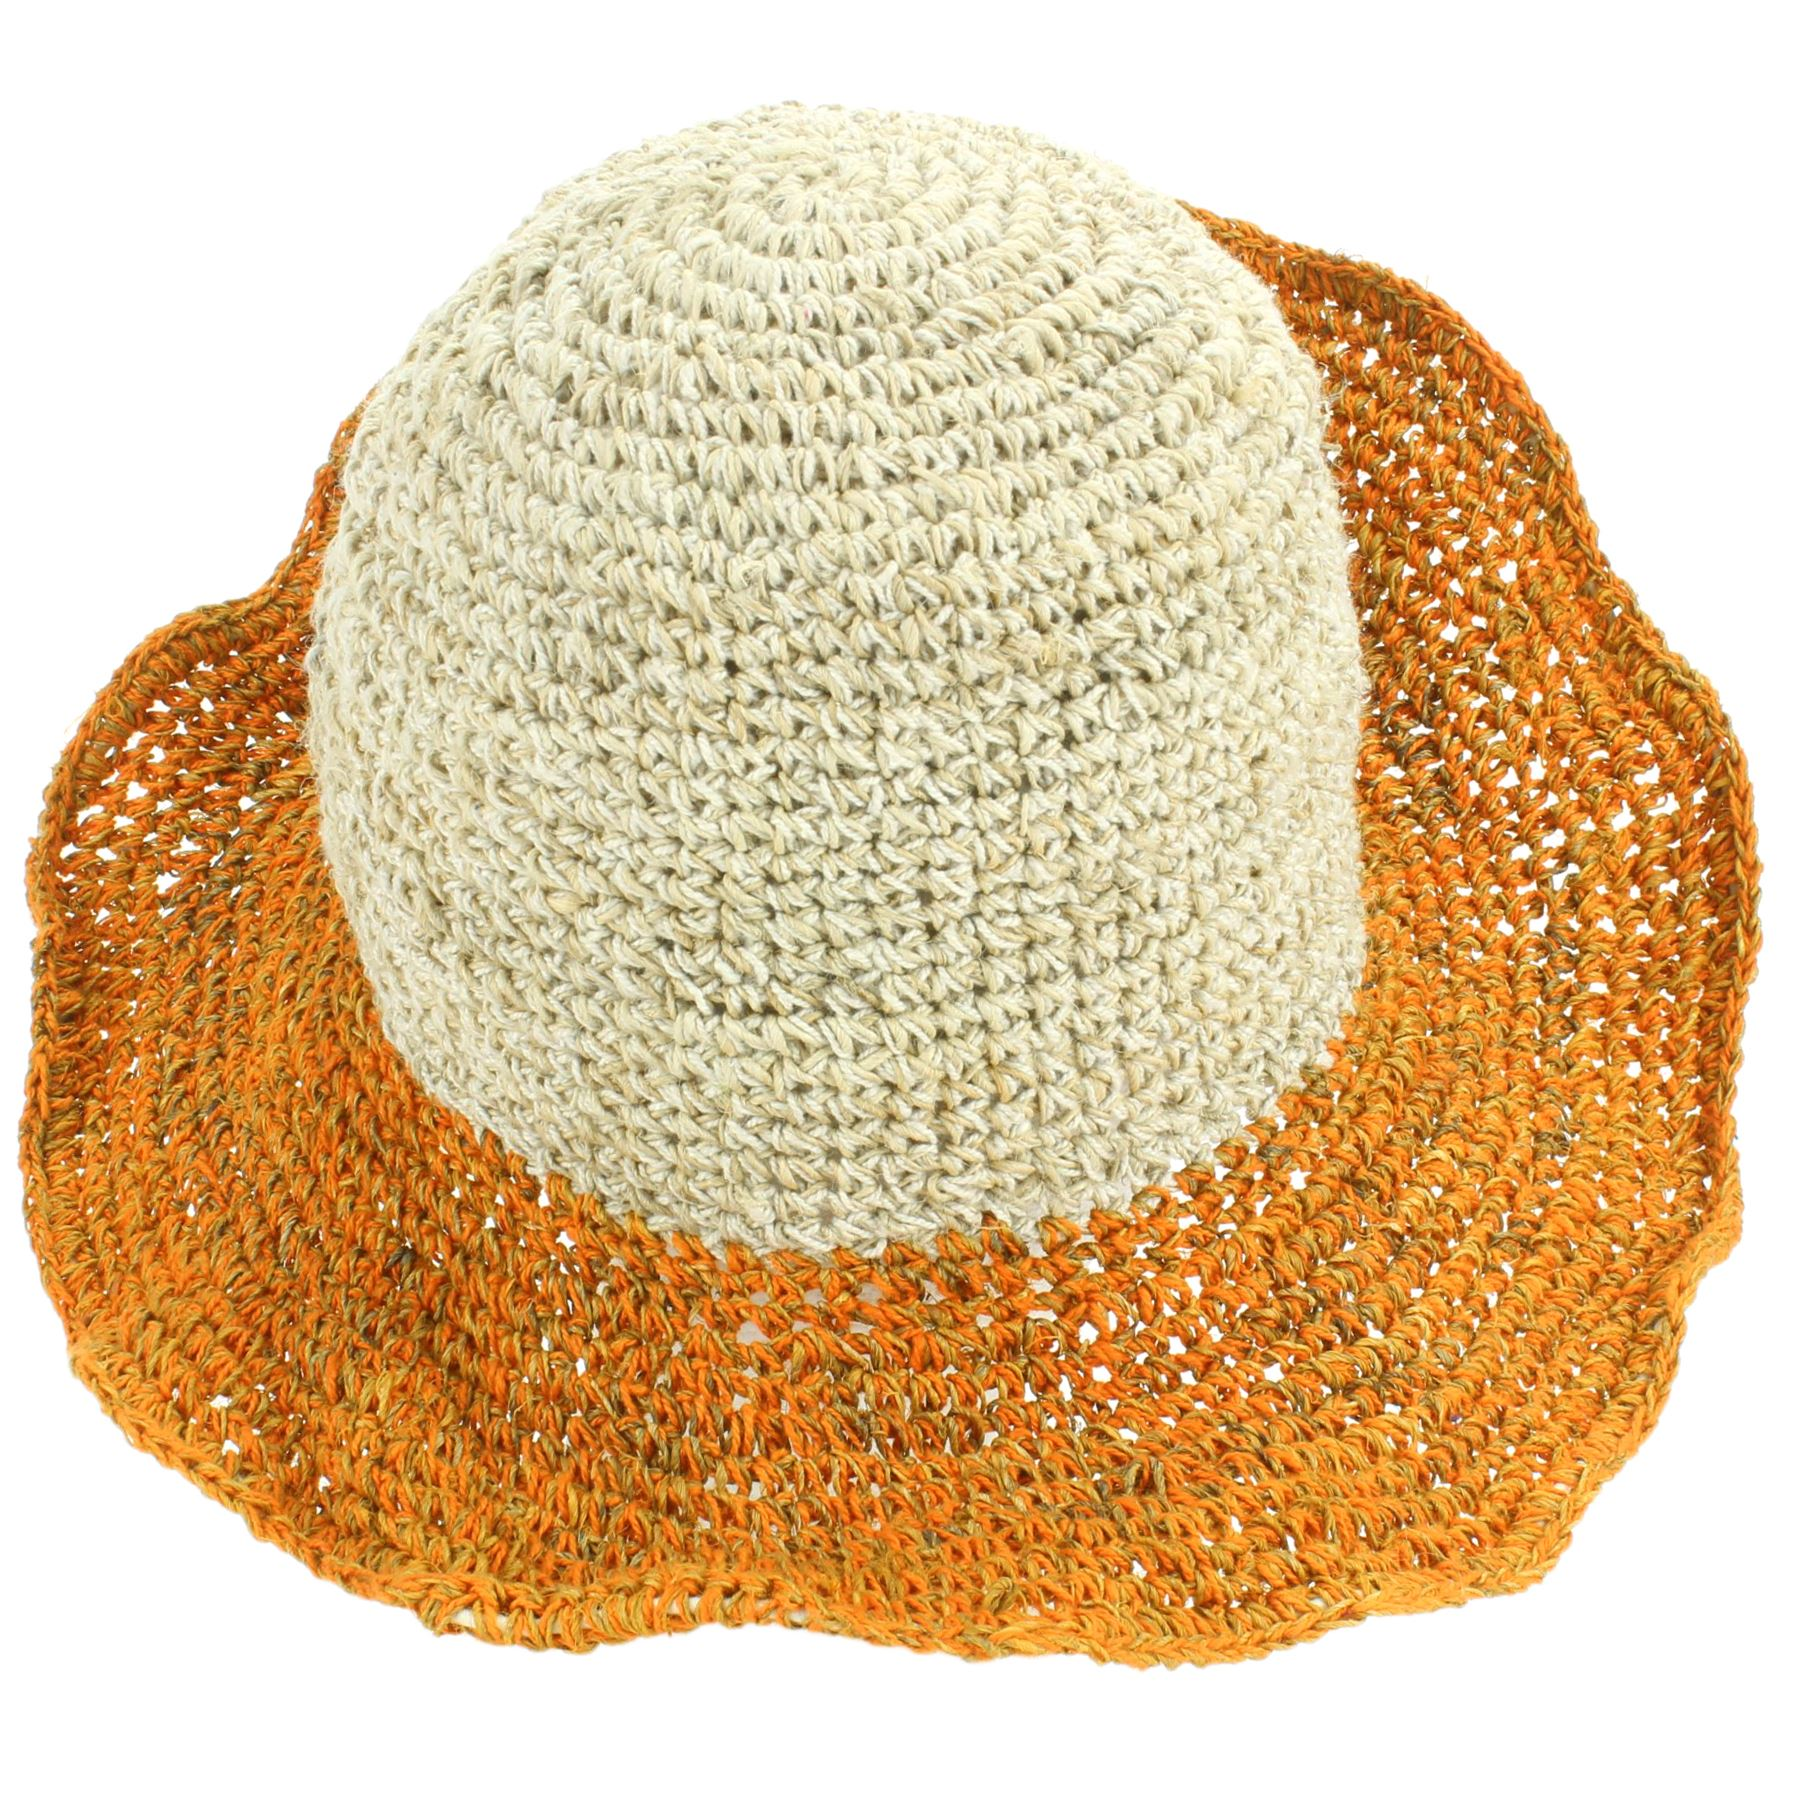 46242634afb8b7 Sun Hat Hemp Cotton Summer LoudElephant Colour Beach Cap ...